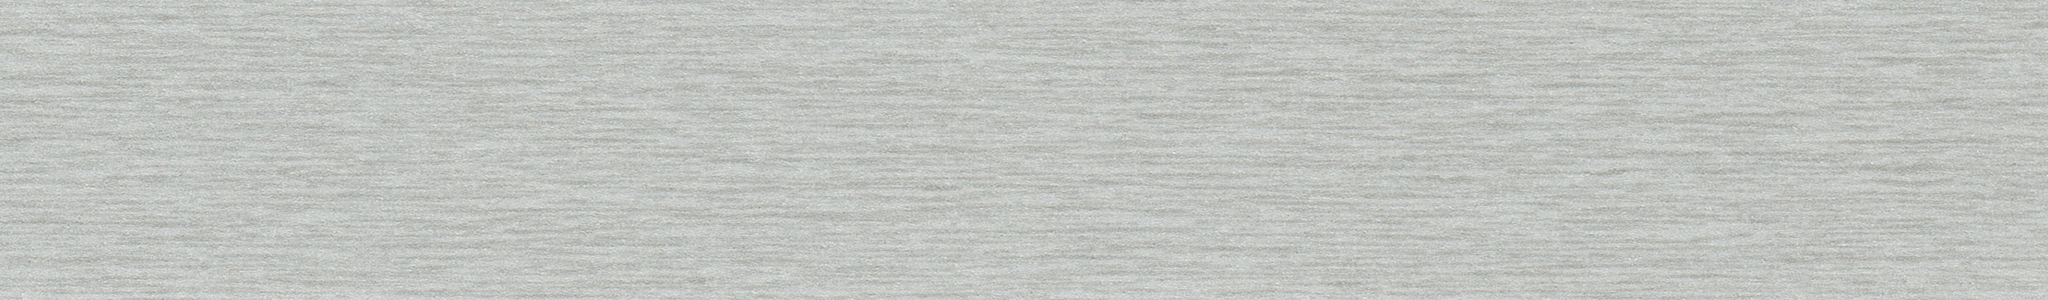 HD 49859 Melamine Edge Platinum Smooth